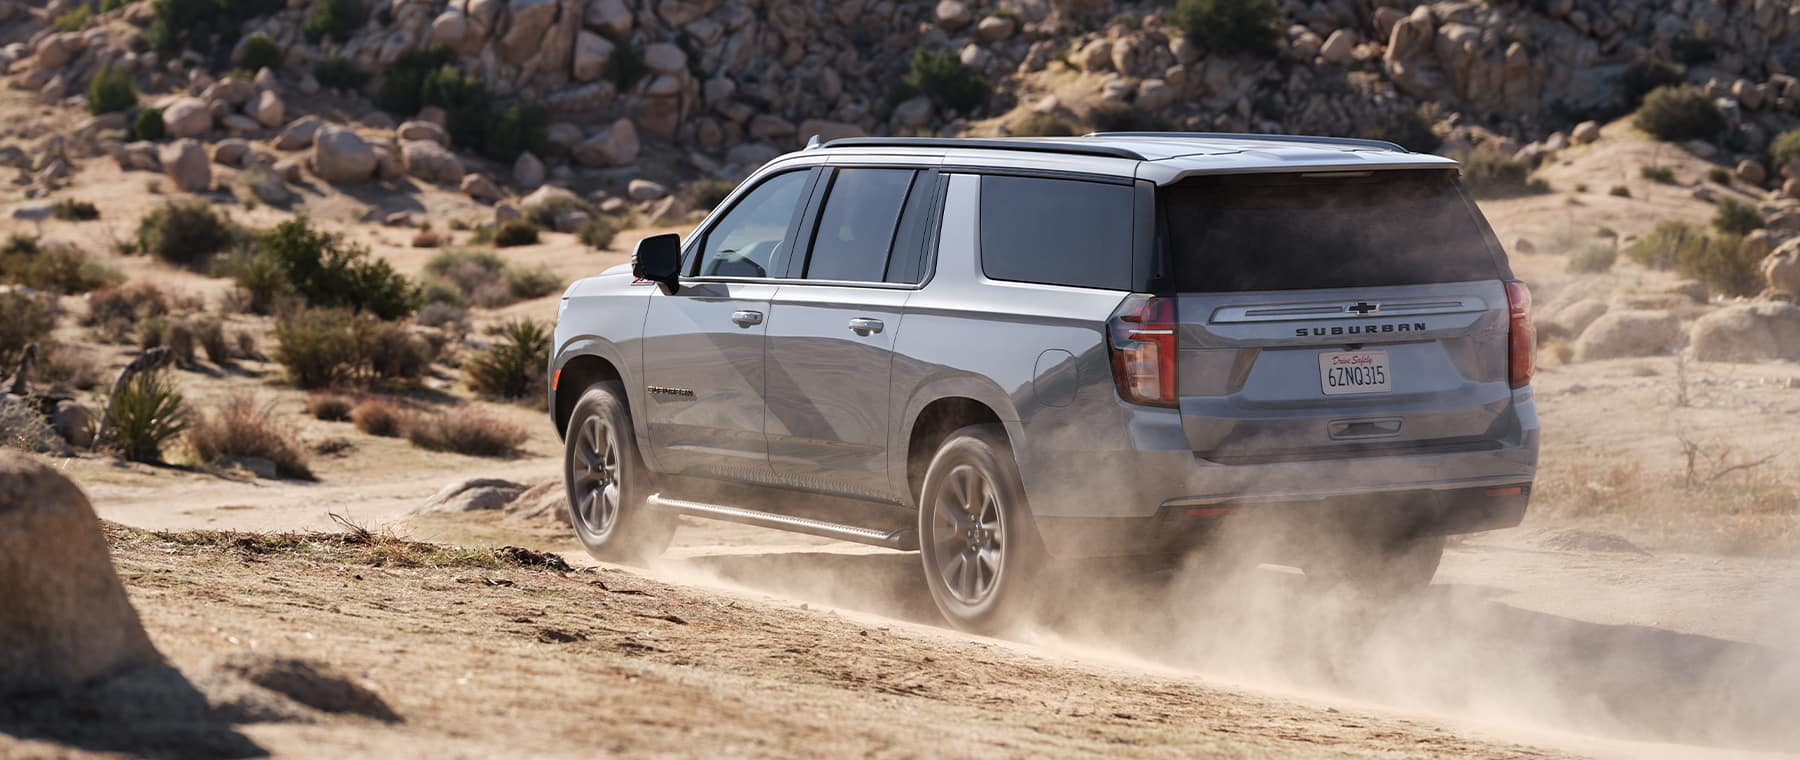 2021 Chevrolet Suburban driving on gravel road